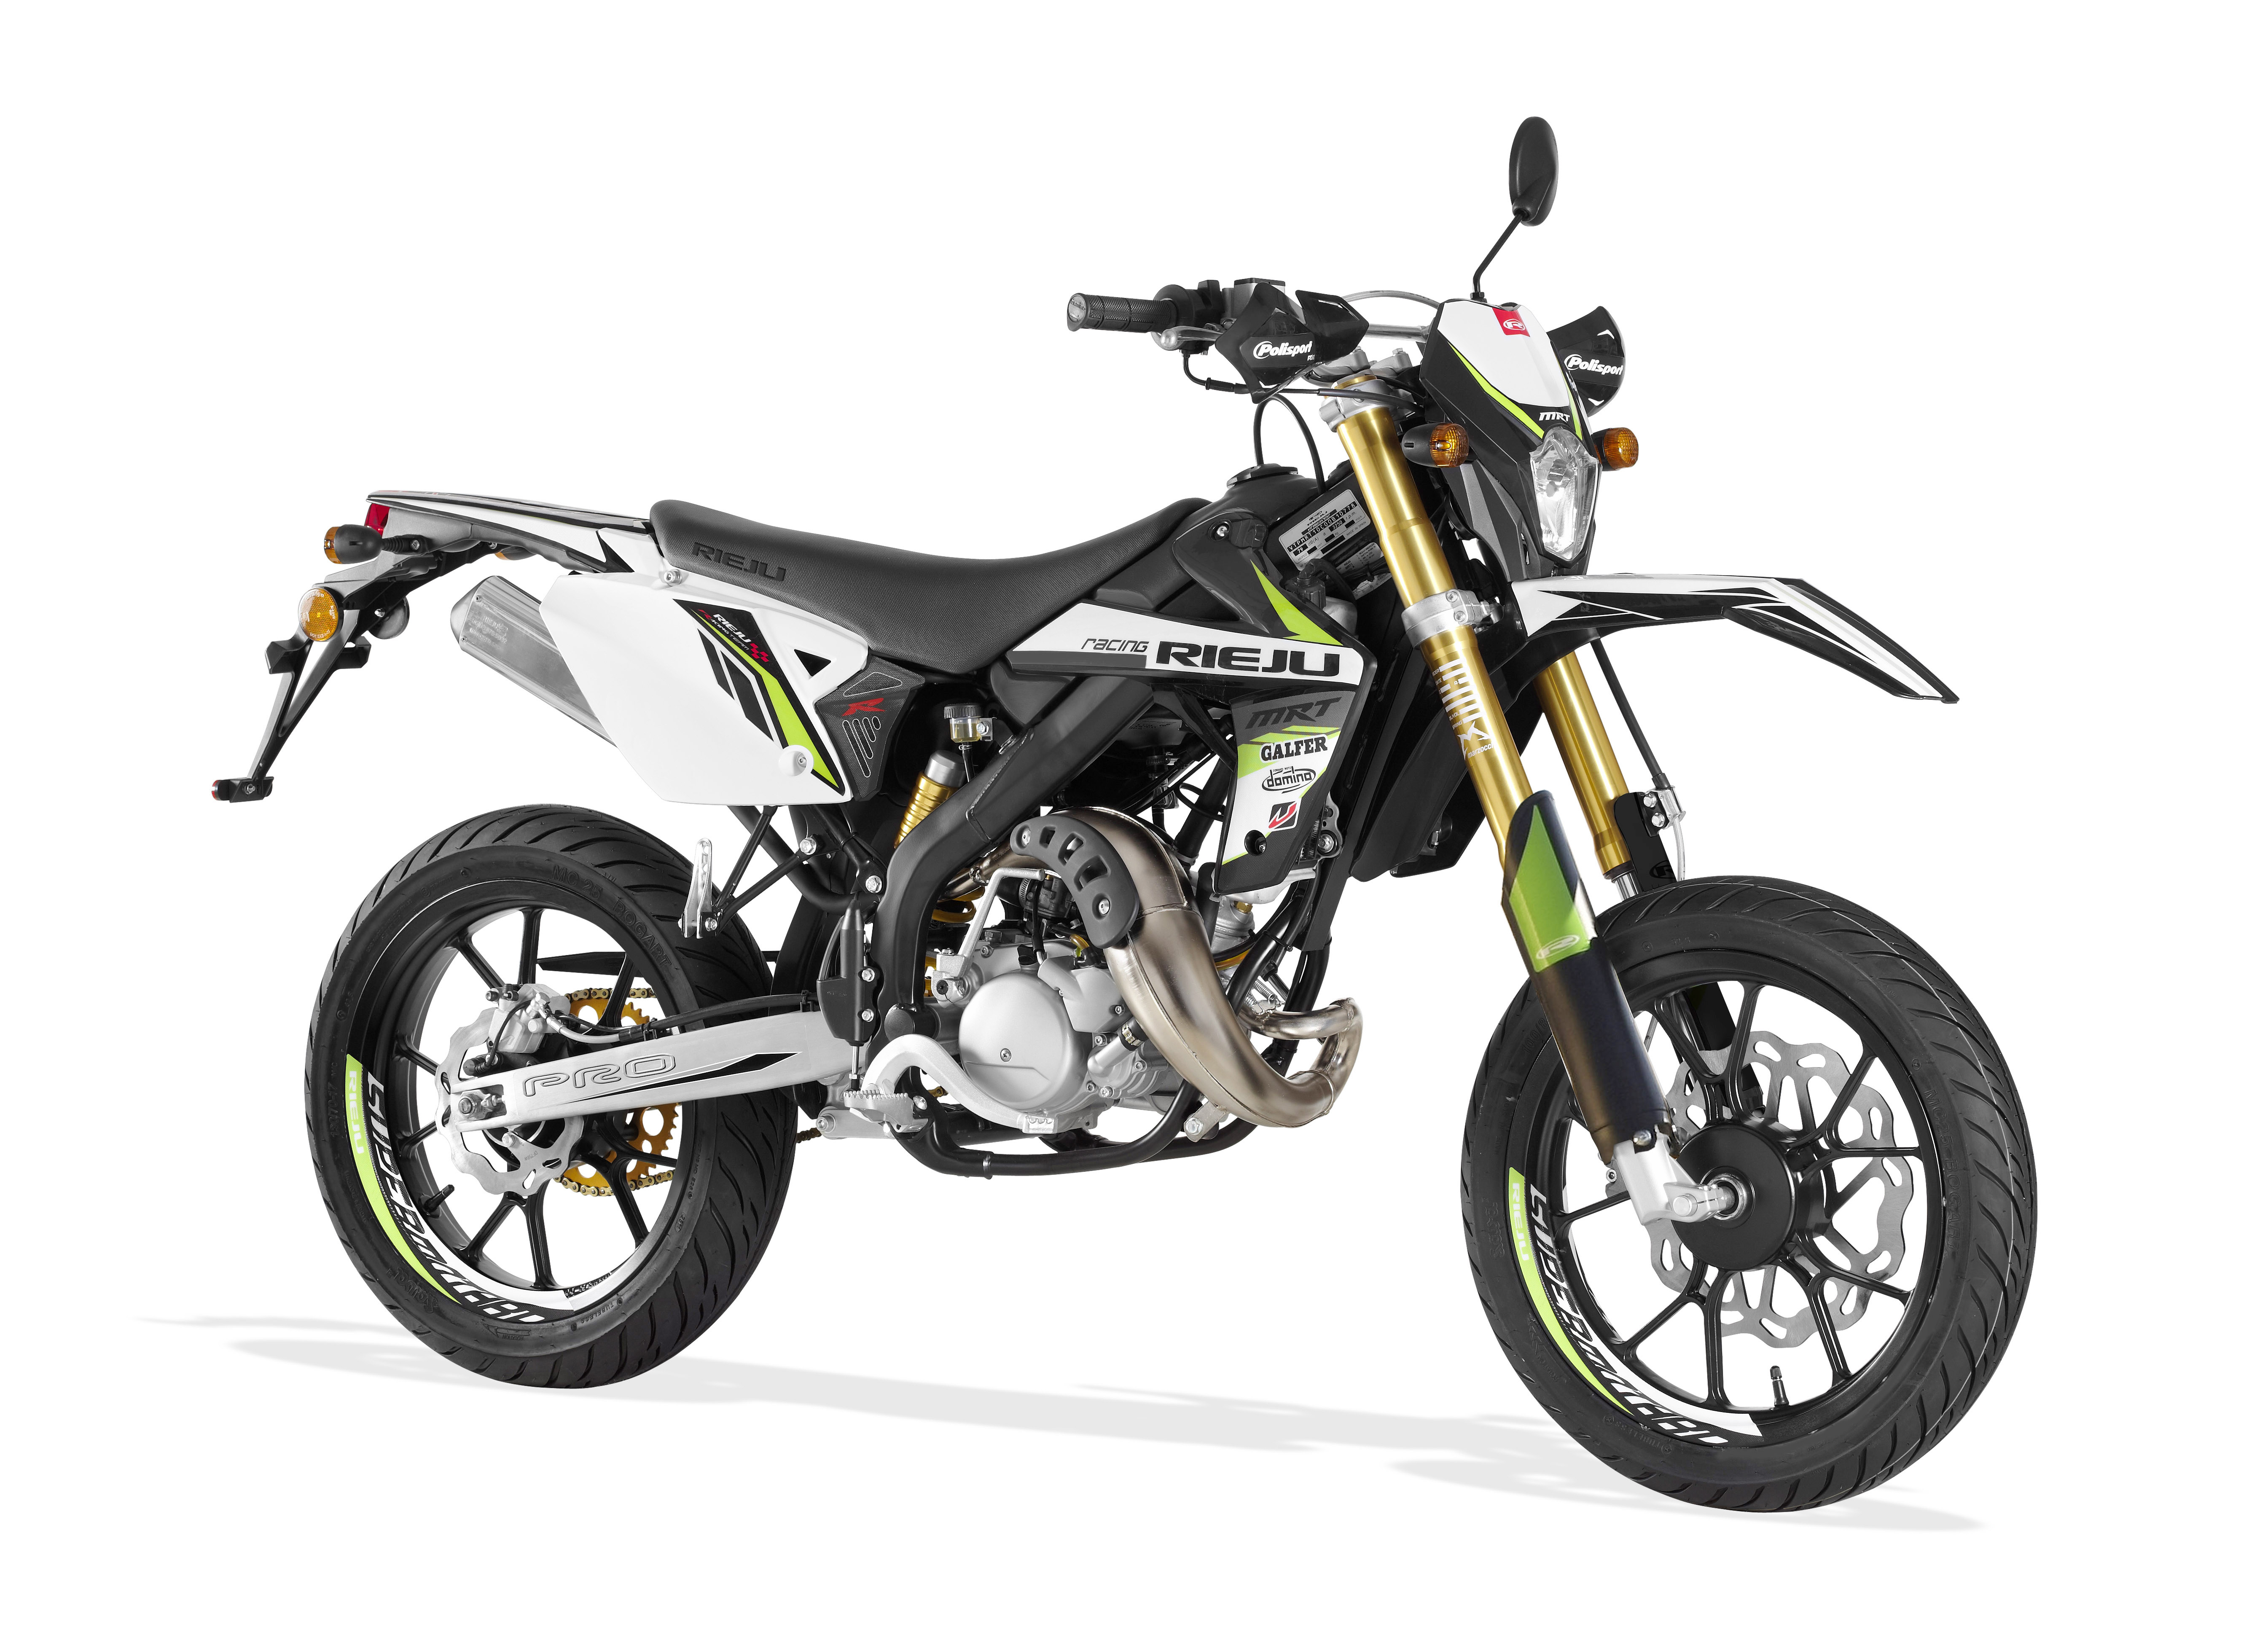 Highland 950 V2 Outback Supermoto 2008 images #169801